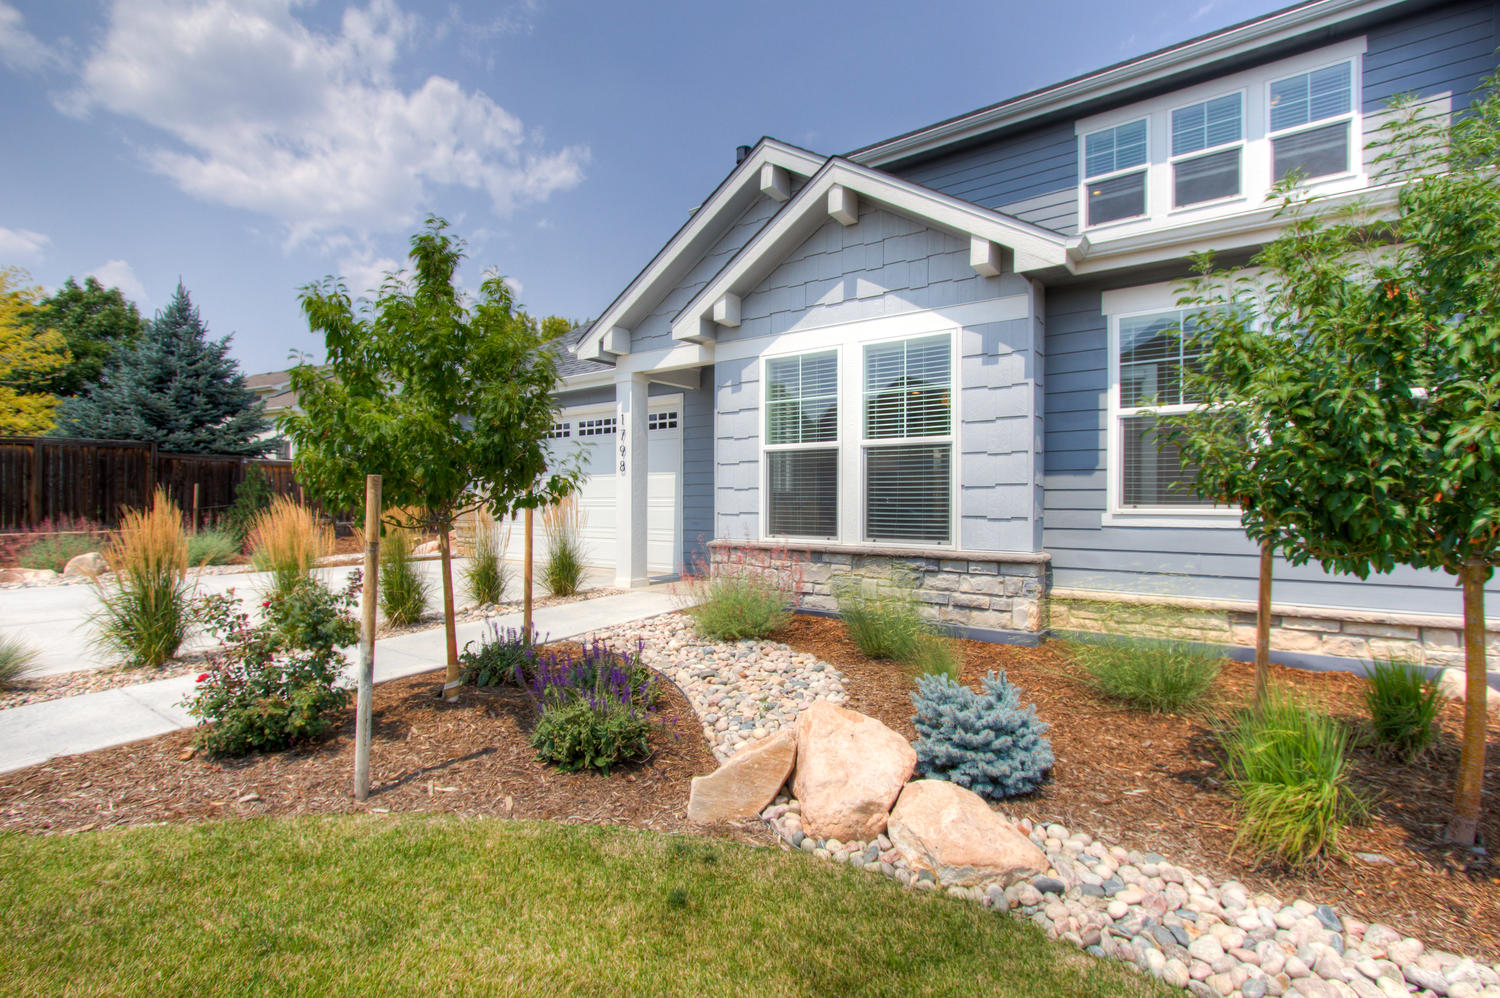 1798 fromme prairie way fort collins co 80526 usa virtual tour